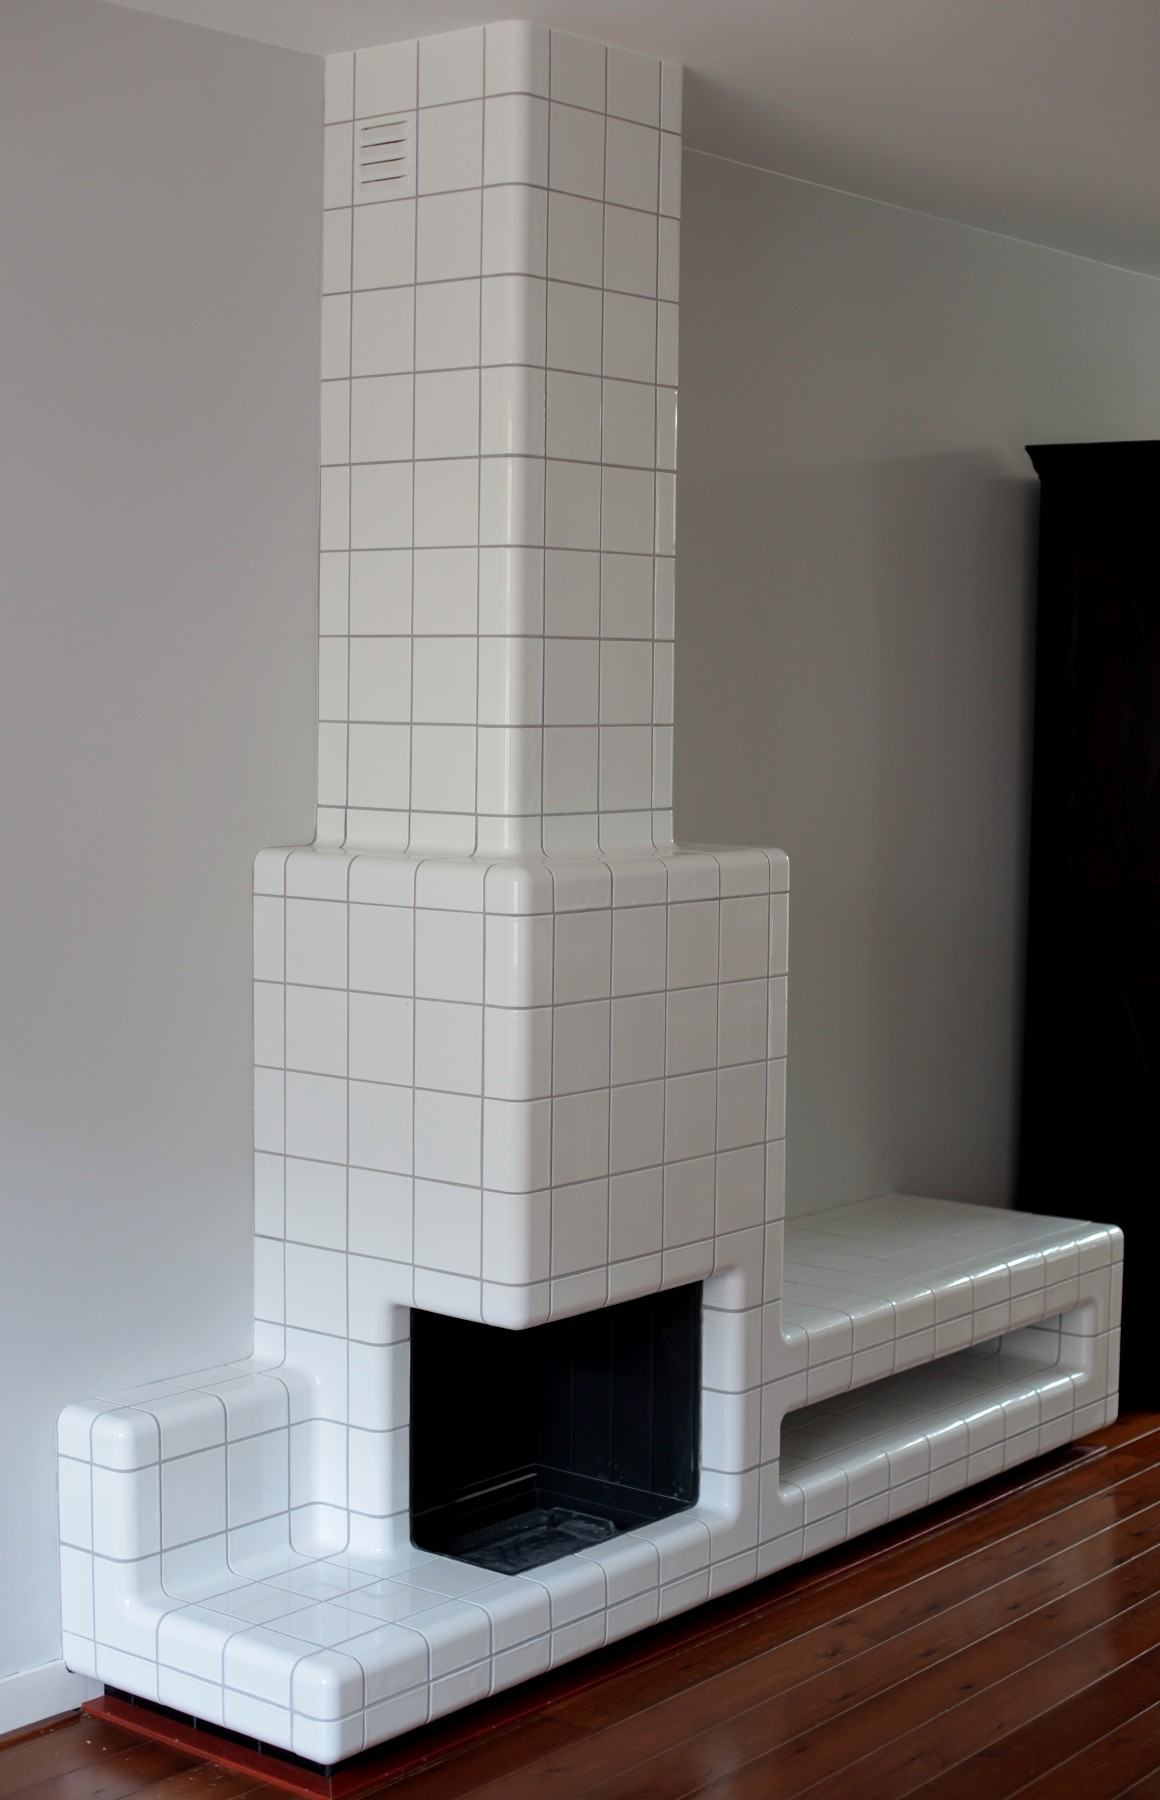 tiled fireplace with rounded 3d tiles, threedimensional corners